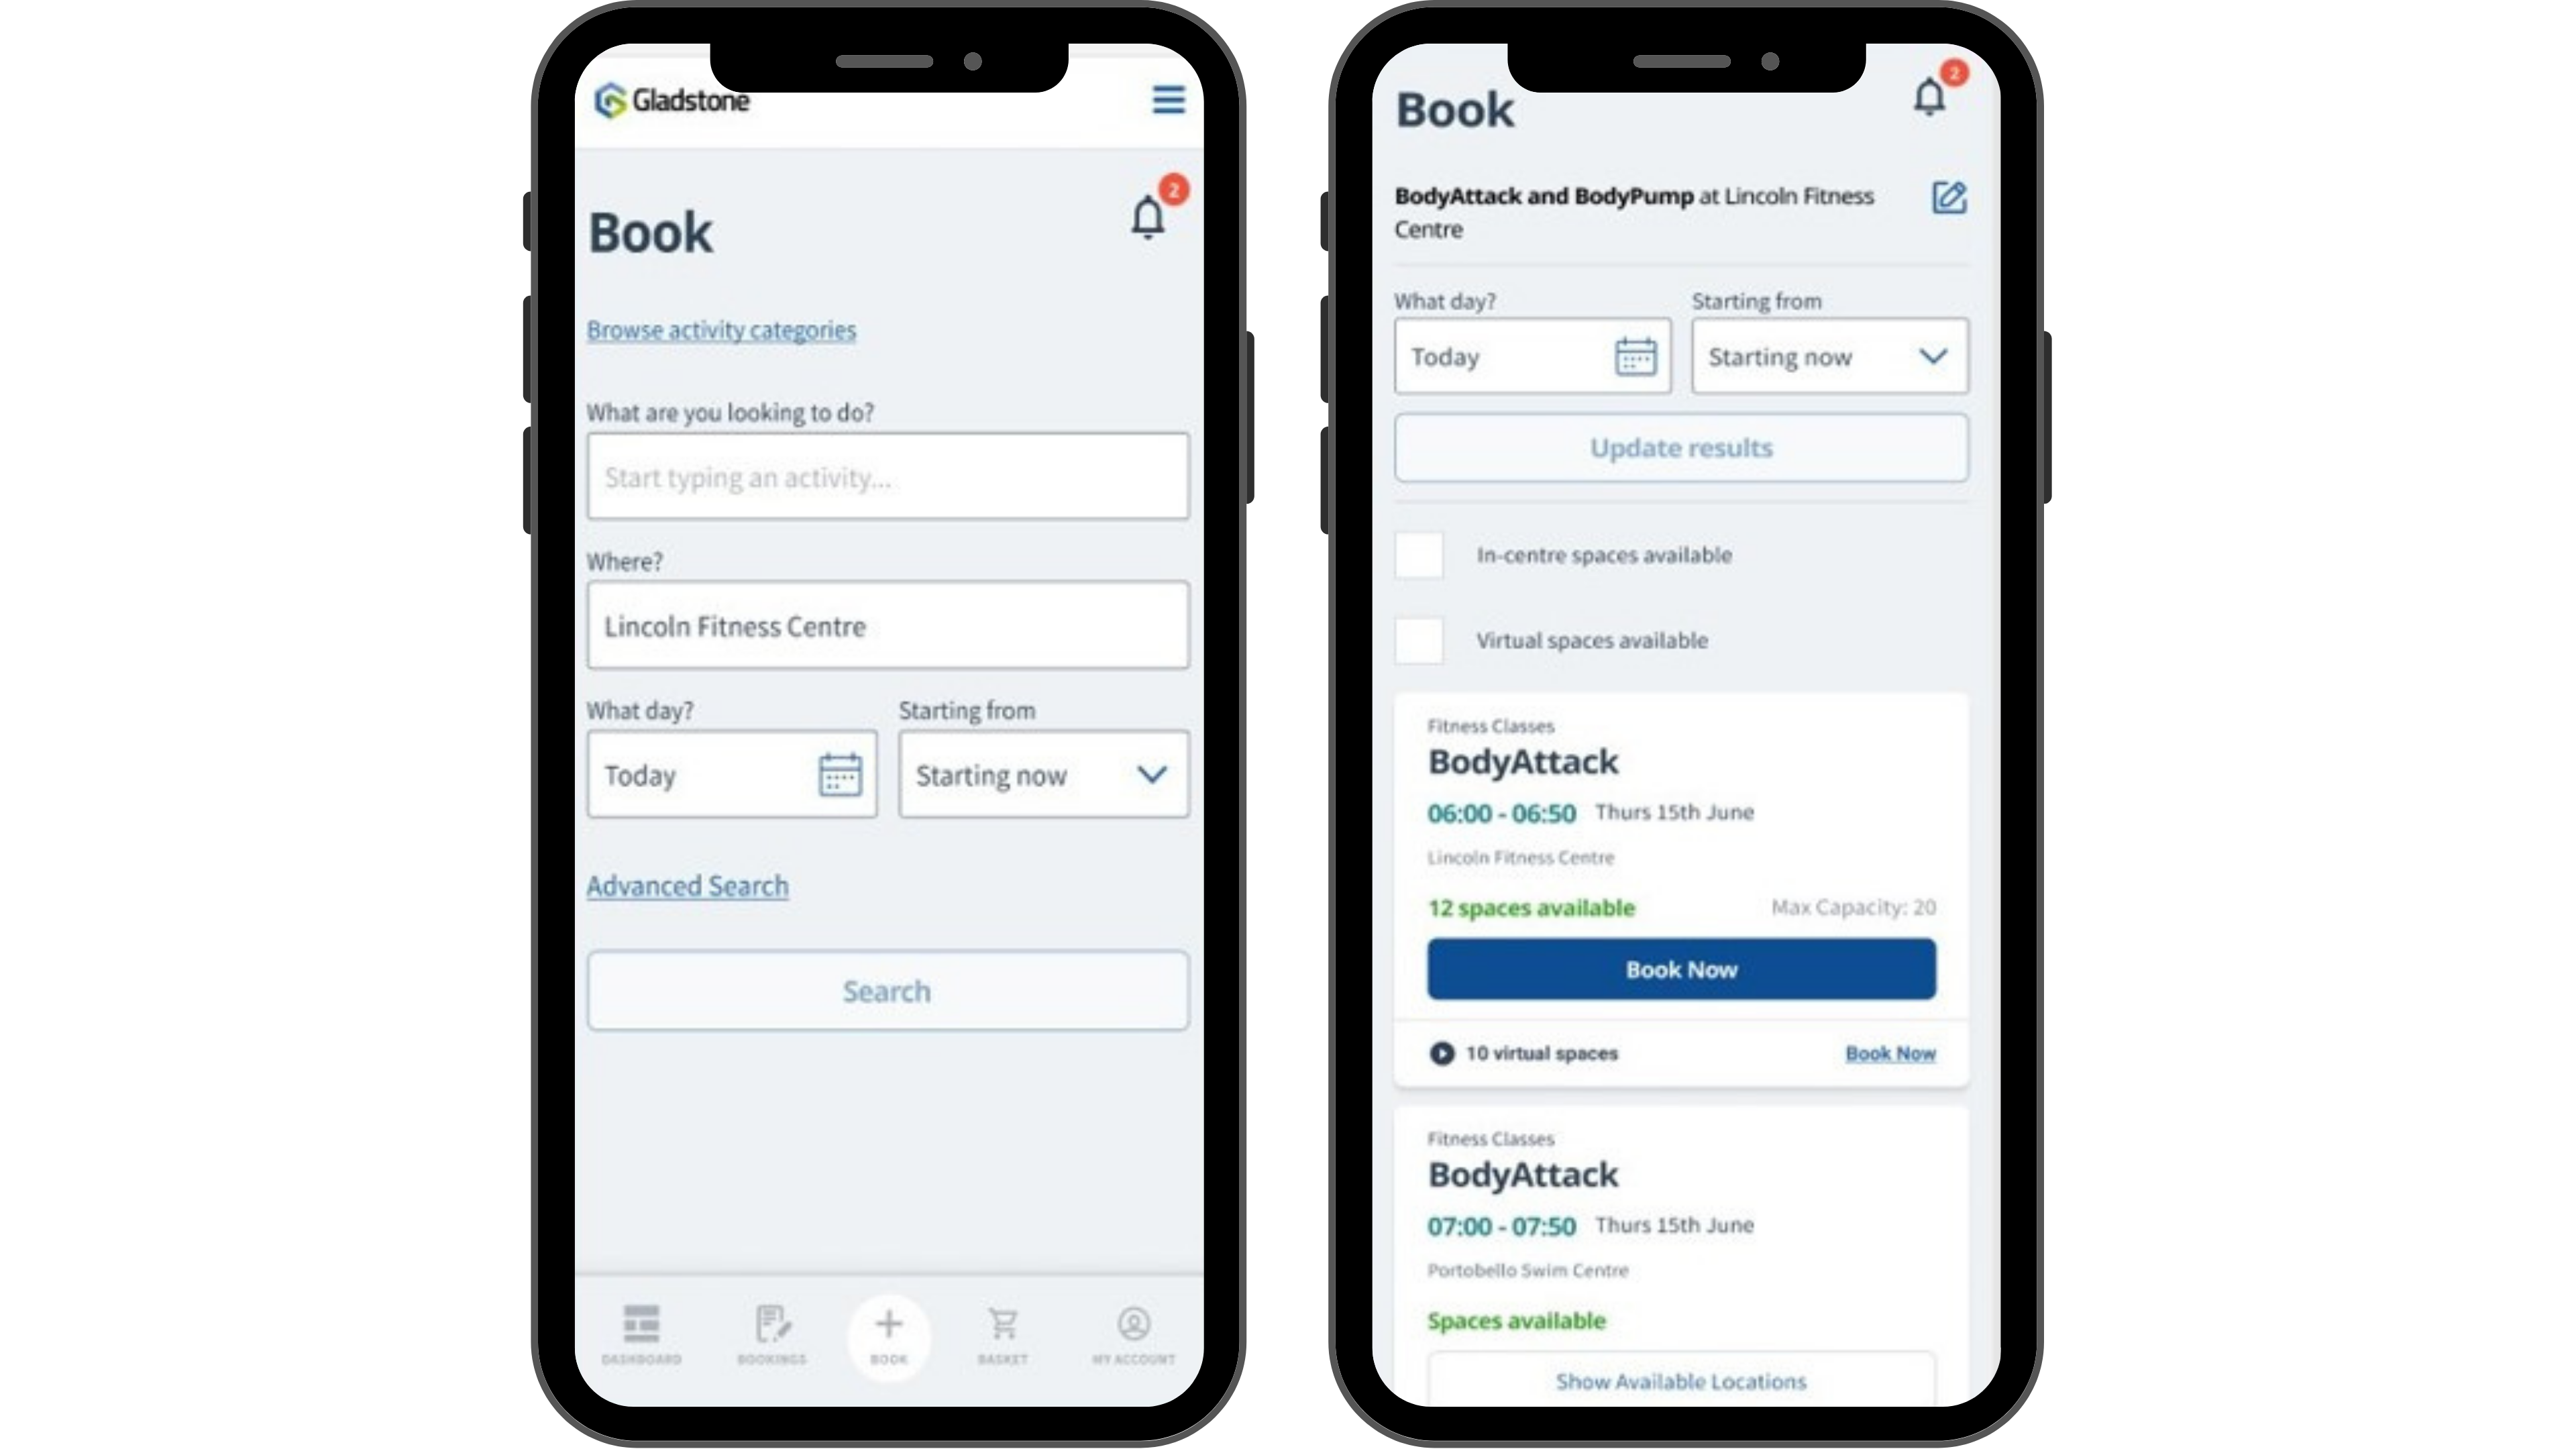 Go Book on Mobile Phone side by side